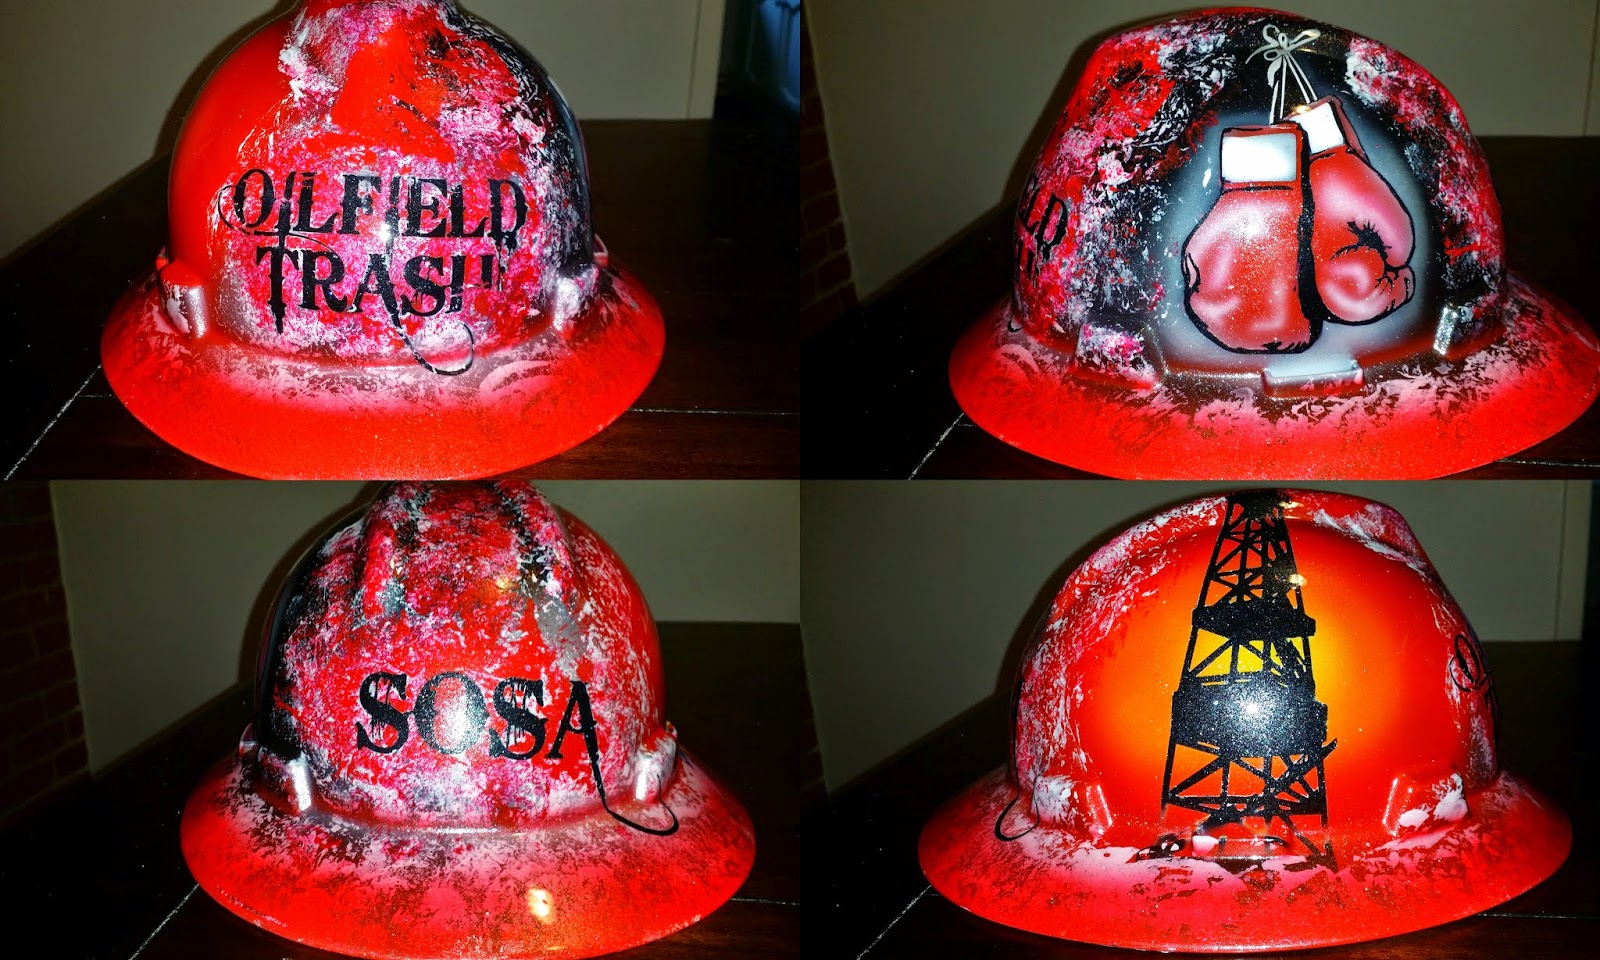 2efff9d5e Zimmer DesignZ Custom Paint: Update on custom airbrushed and painted ...